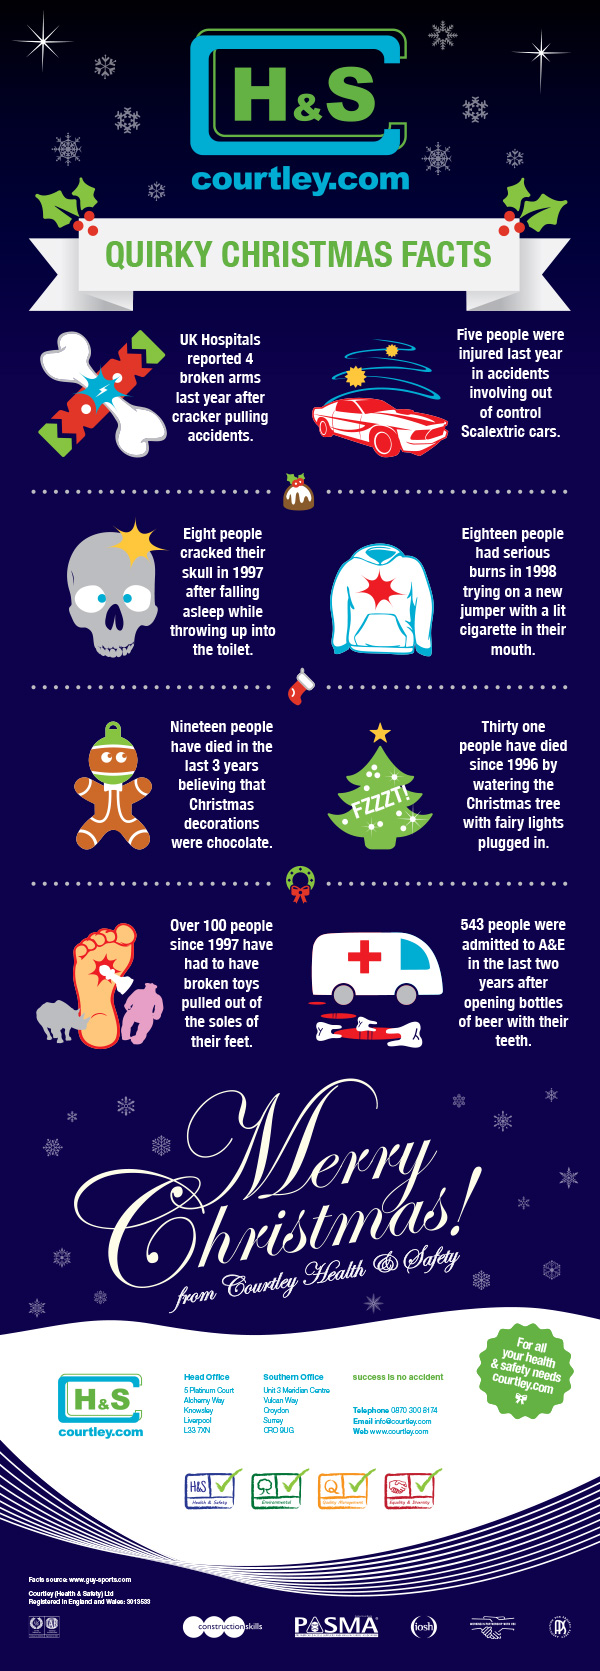 courtley-christmas-facts2